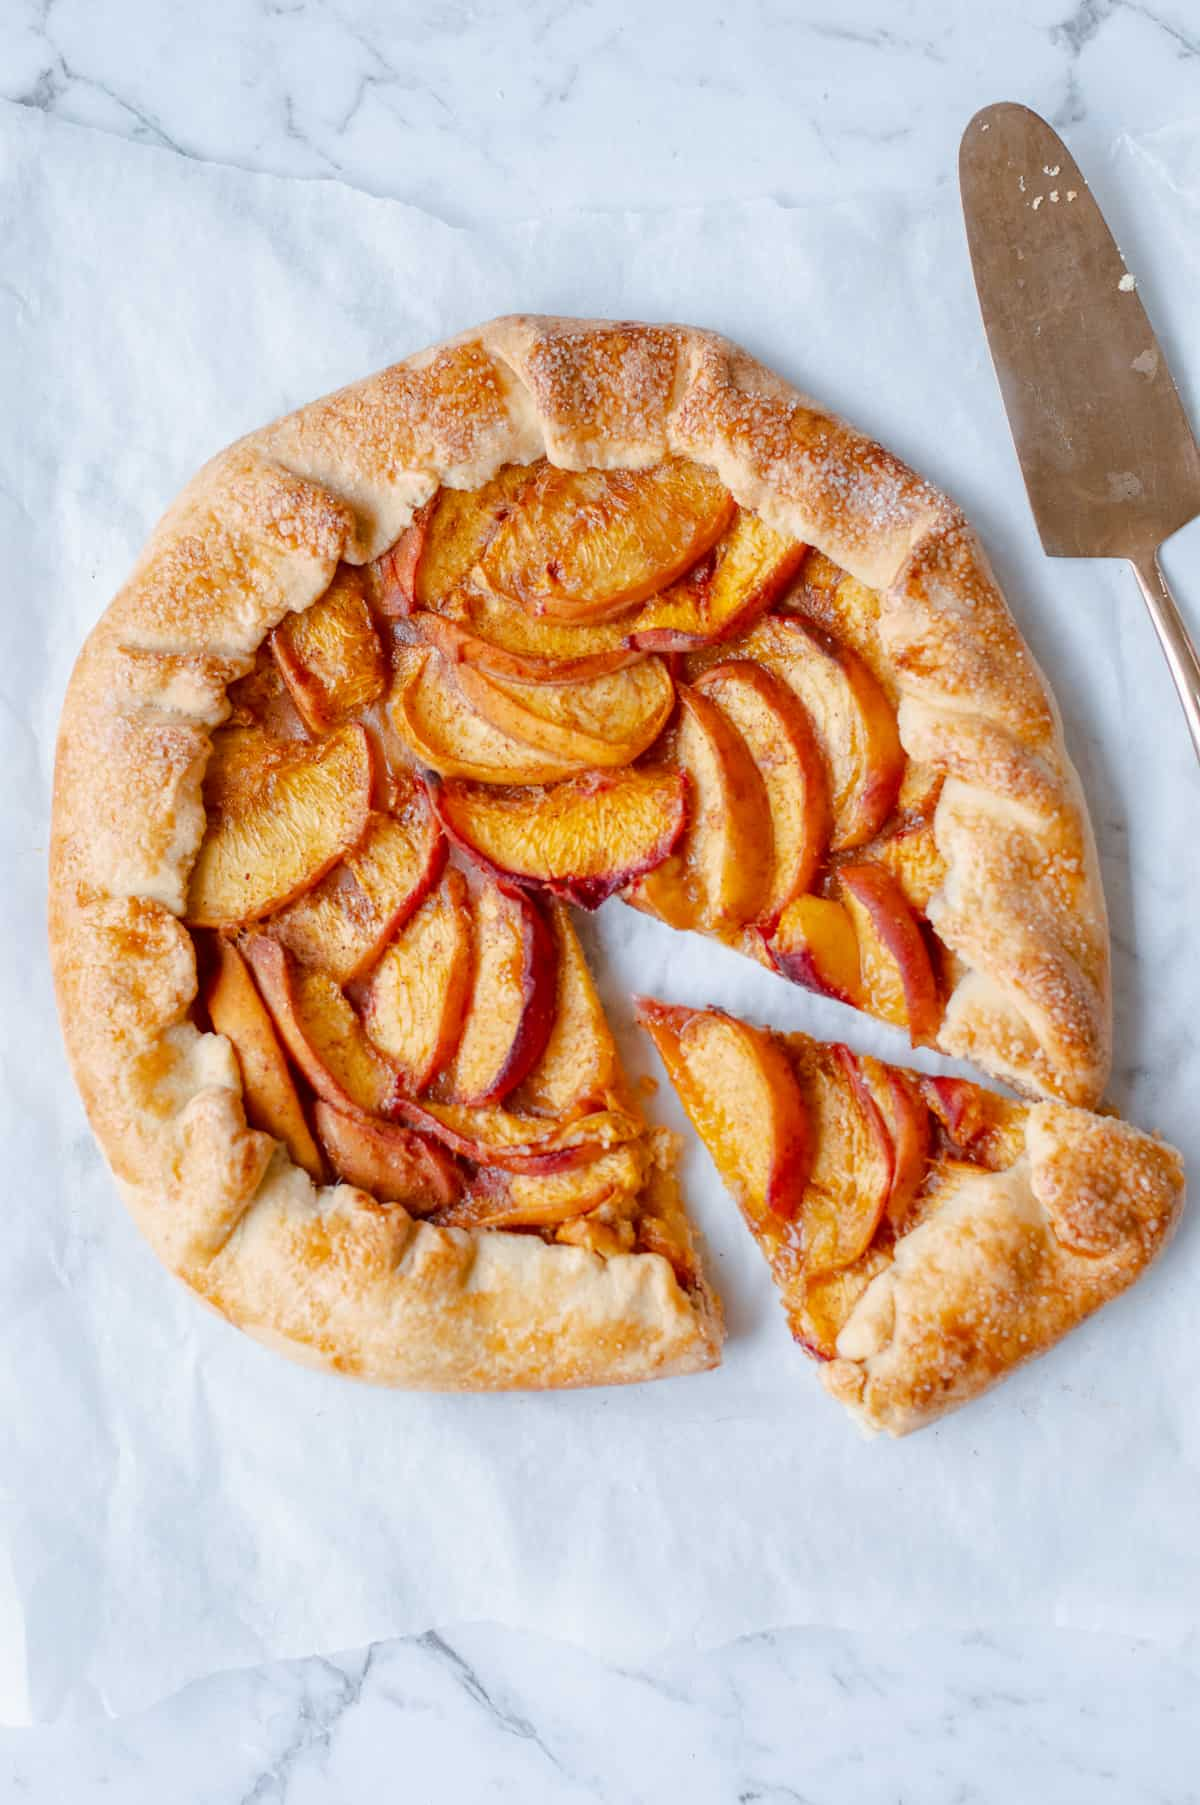 peach galette sliced with a tart slice